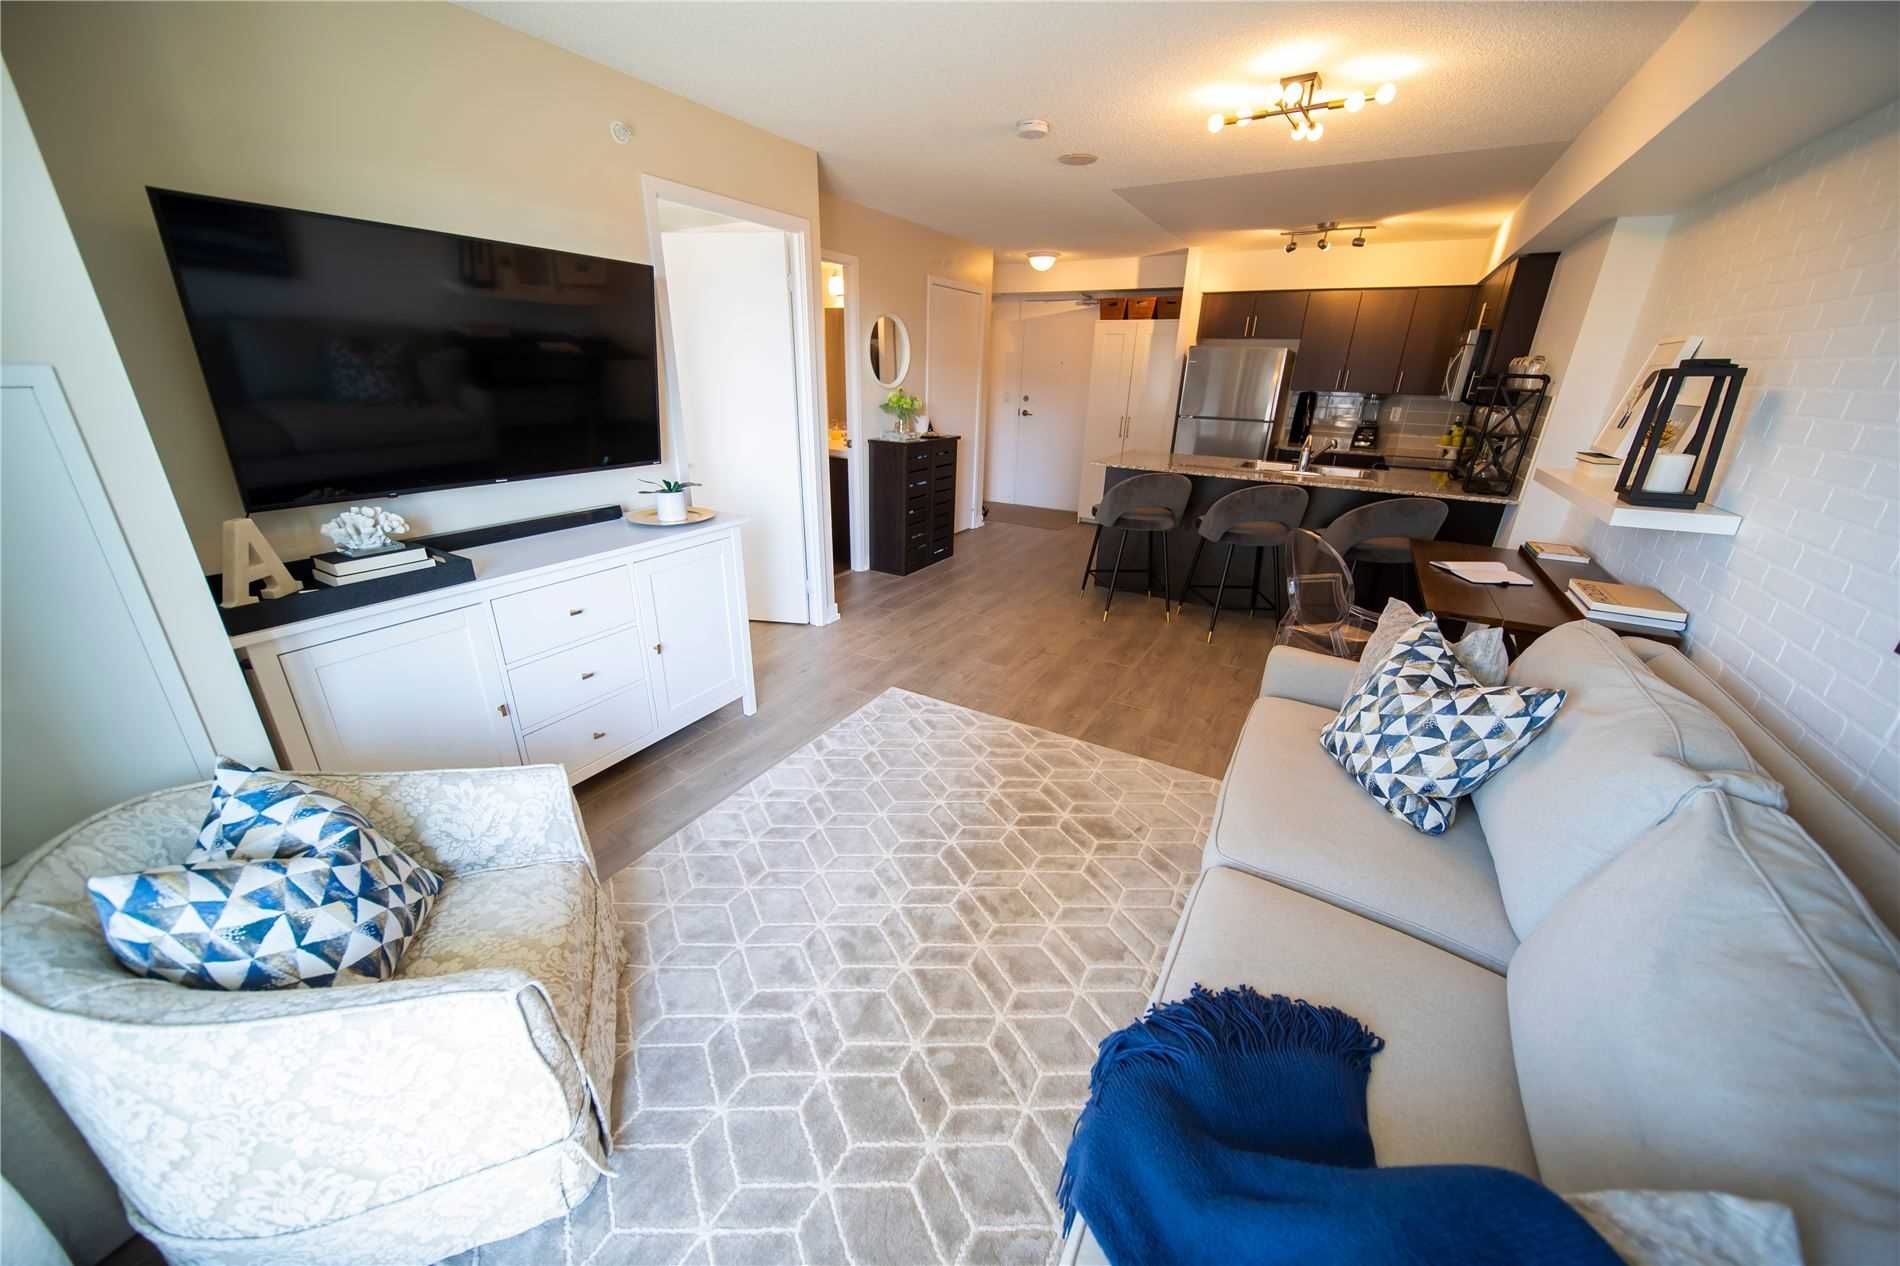 1410 Dupont St, Toronto, Ontario M6H 2B1, 1 Bedroom Bedrooms, 6 Rooms Rooms,1 BathroomBathrooms,Condo Apt,For Sale,Dupont,W4896509